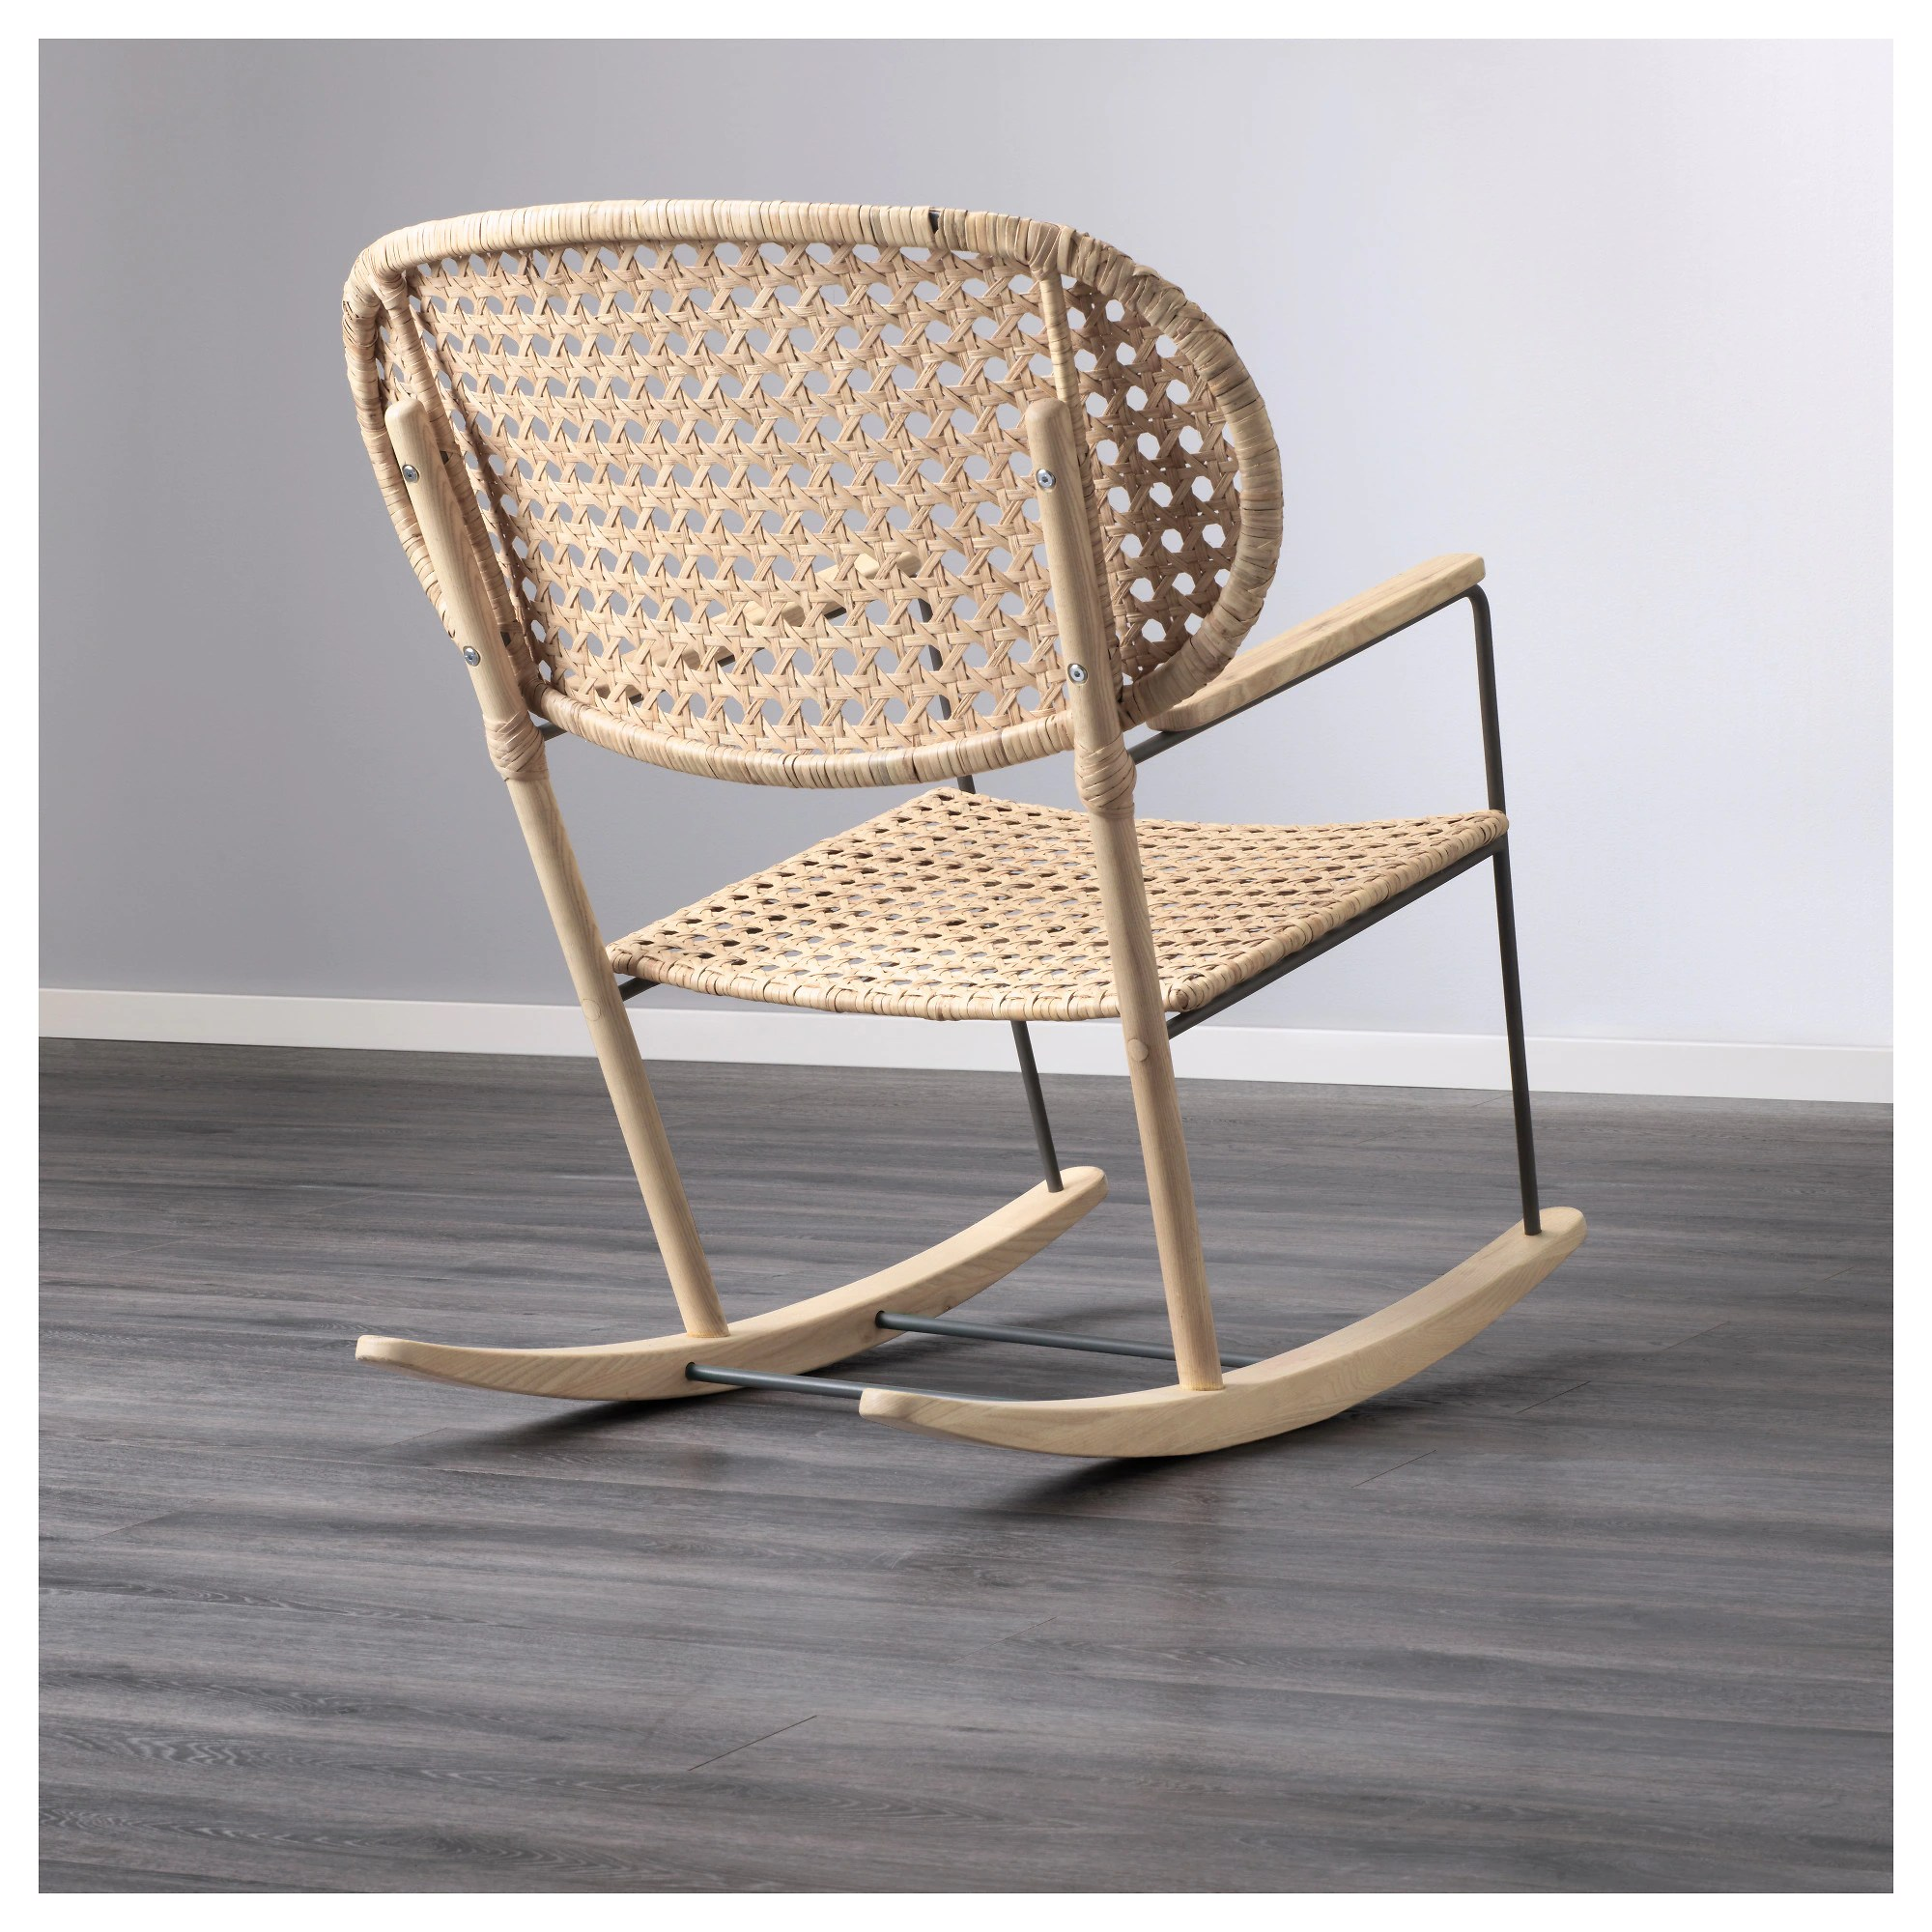 Wicker Rocking Chair GrÖnadal Rocking Chair Gray Natural